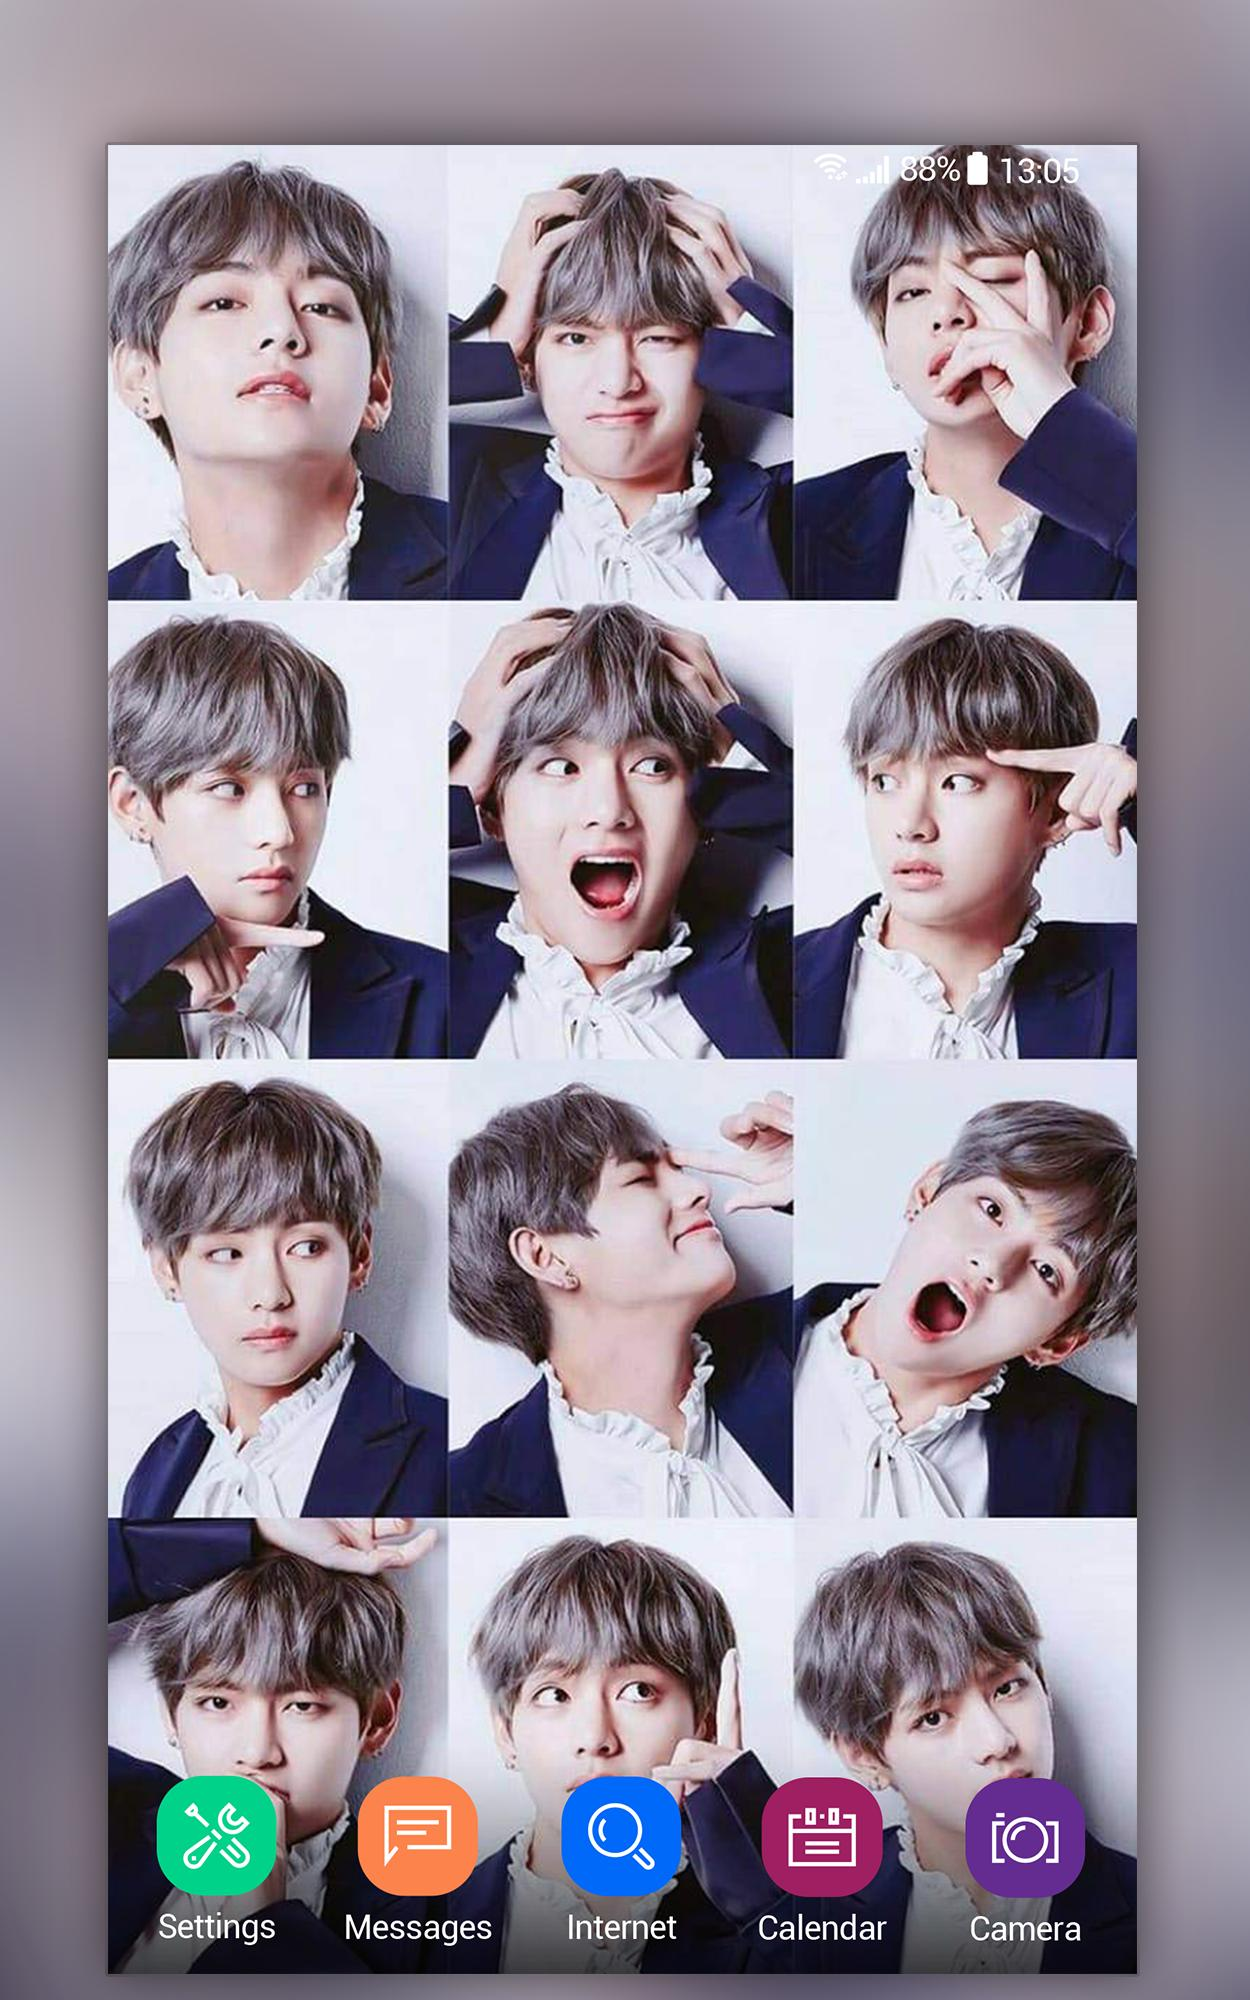 Bts V Kim Taehyung Wallpapers Hd 4k For Android Apk Download